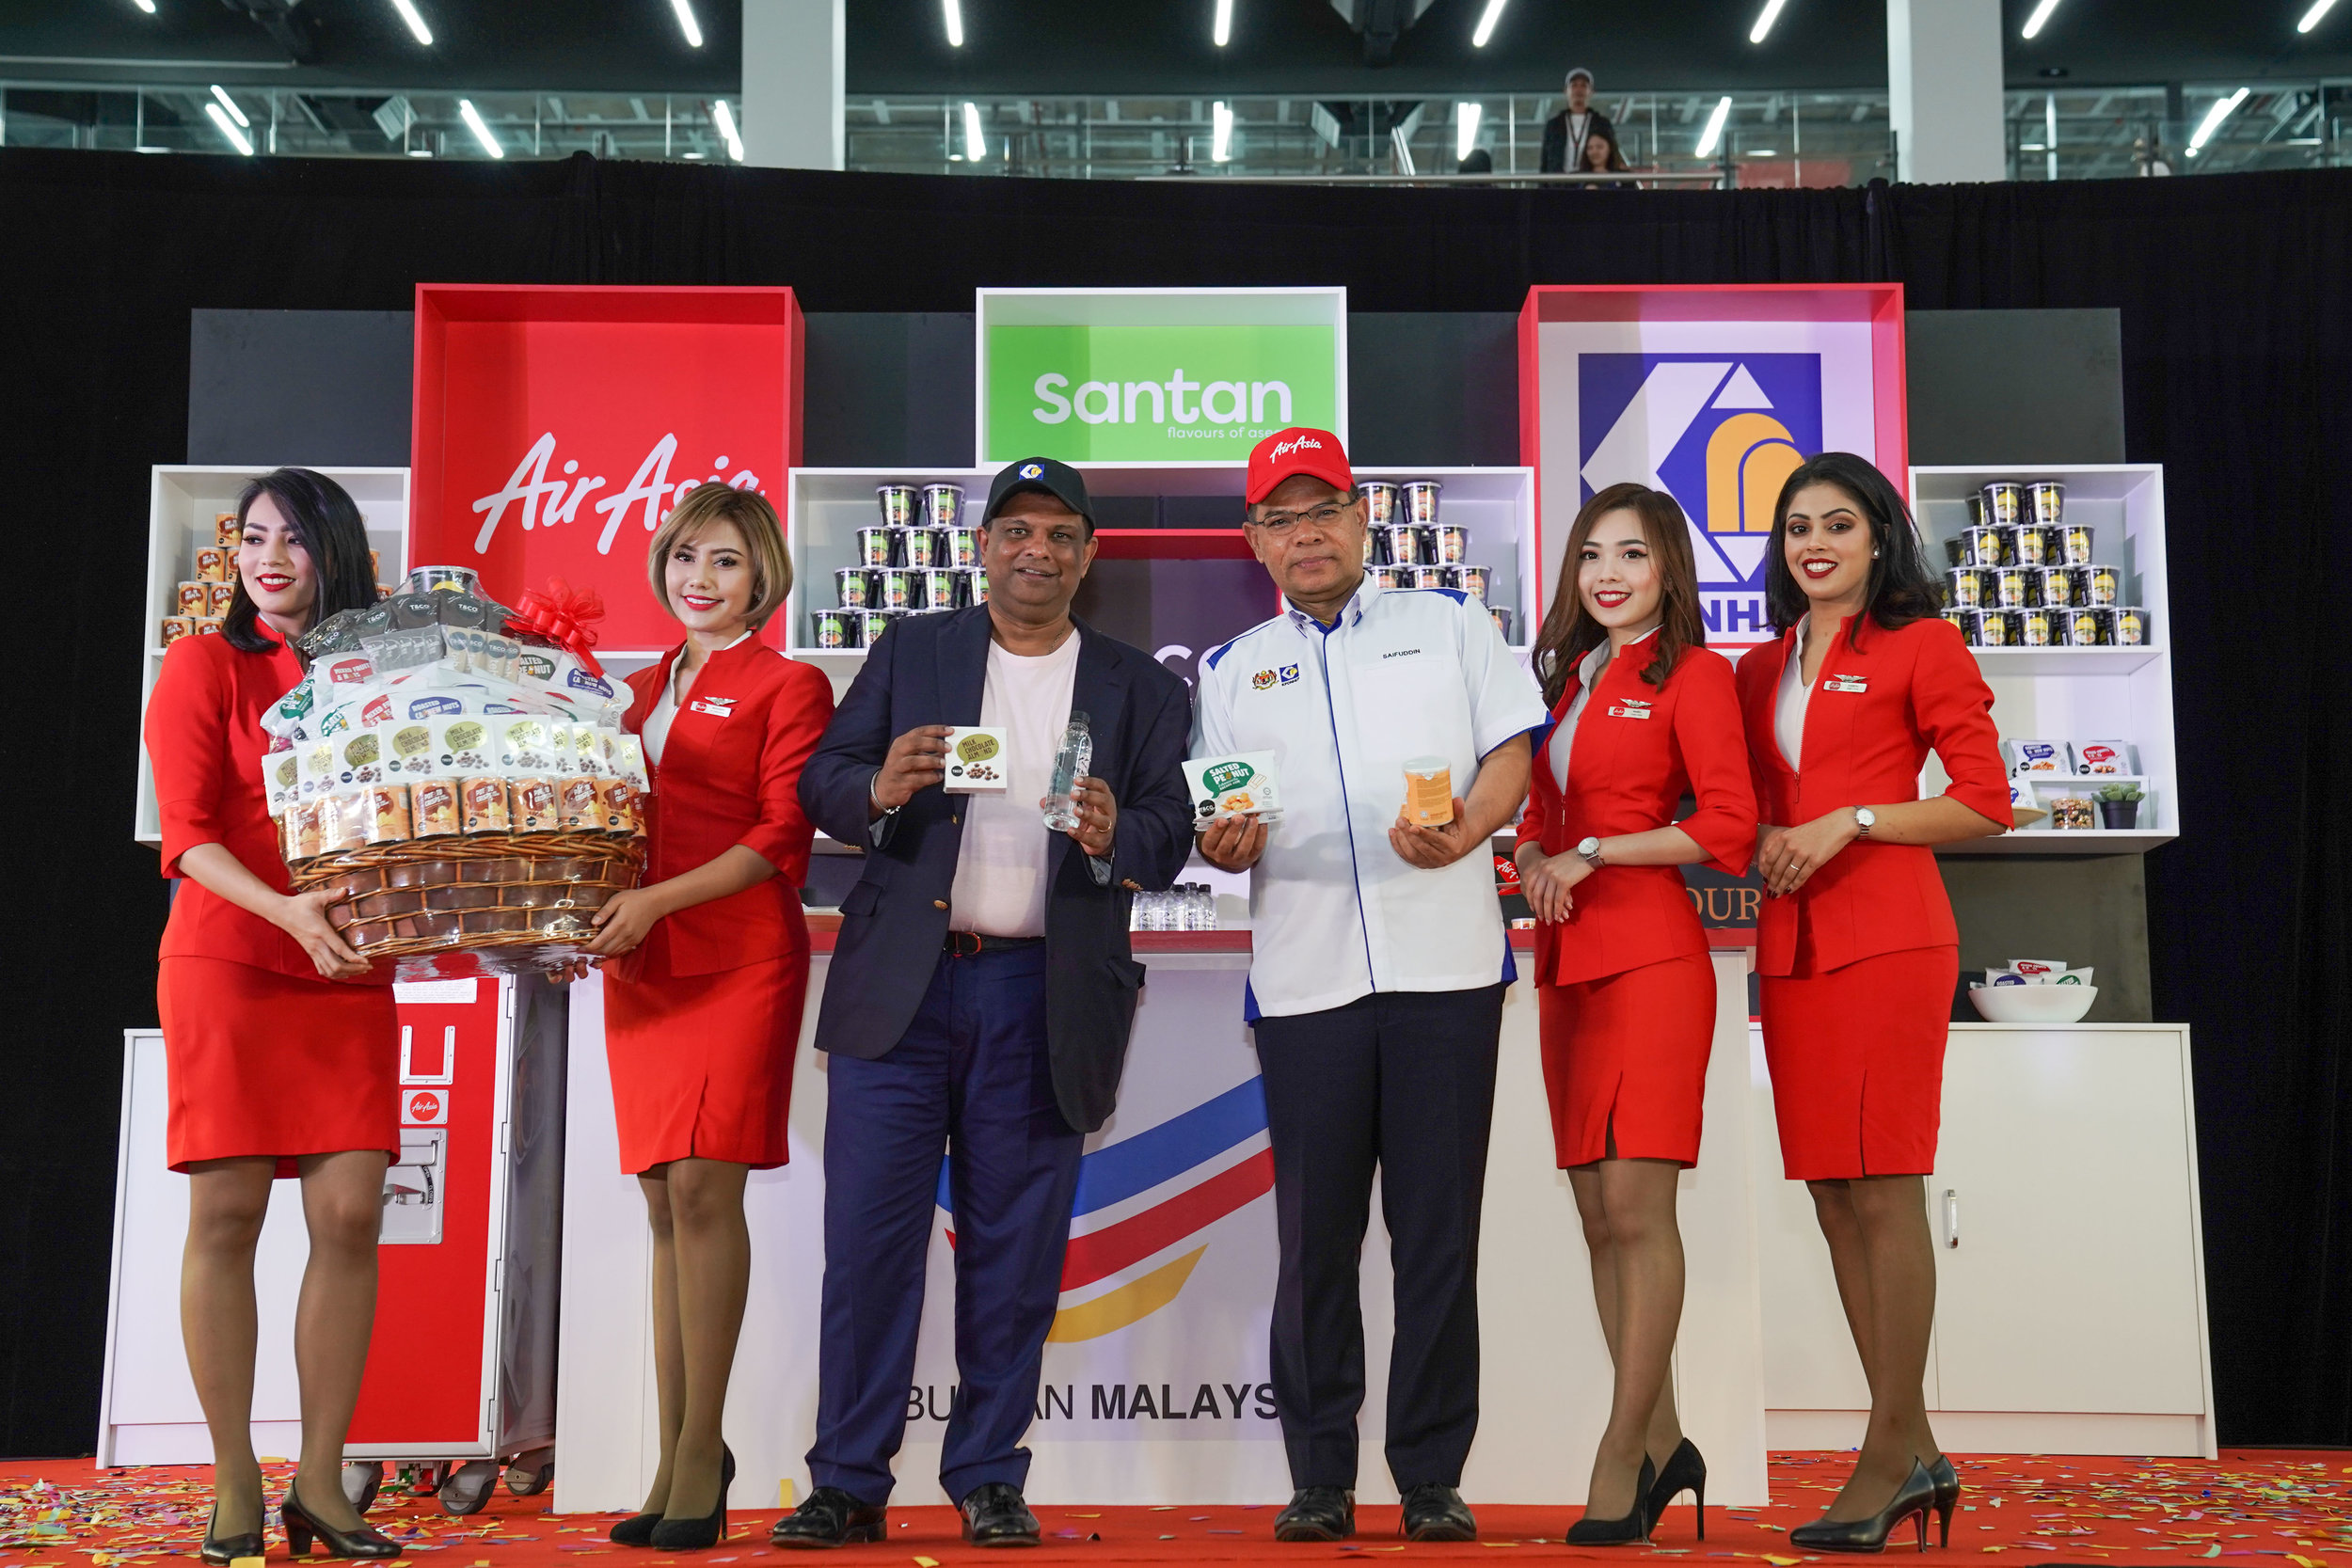 Photo Caption: AirAsia Group CEO Tony Fernandes and Minister of Domestic Trade and Consumer Affairs YB Datuk Seri Saifuddin Nasution bin Ismail showcasing some of the Malaysian products sold on board AirAsia flights at the AirAsia Supports 'Buy Malaysia Products' campaign event at AirAsia RedQ today.